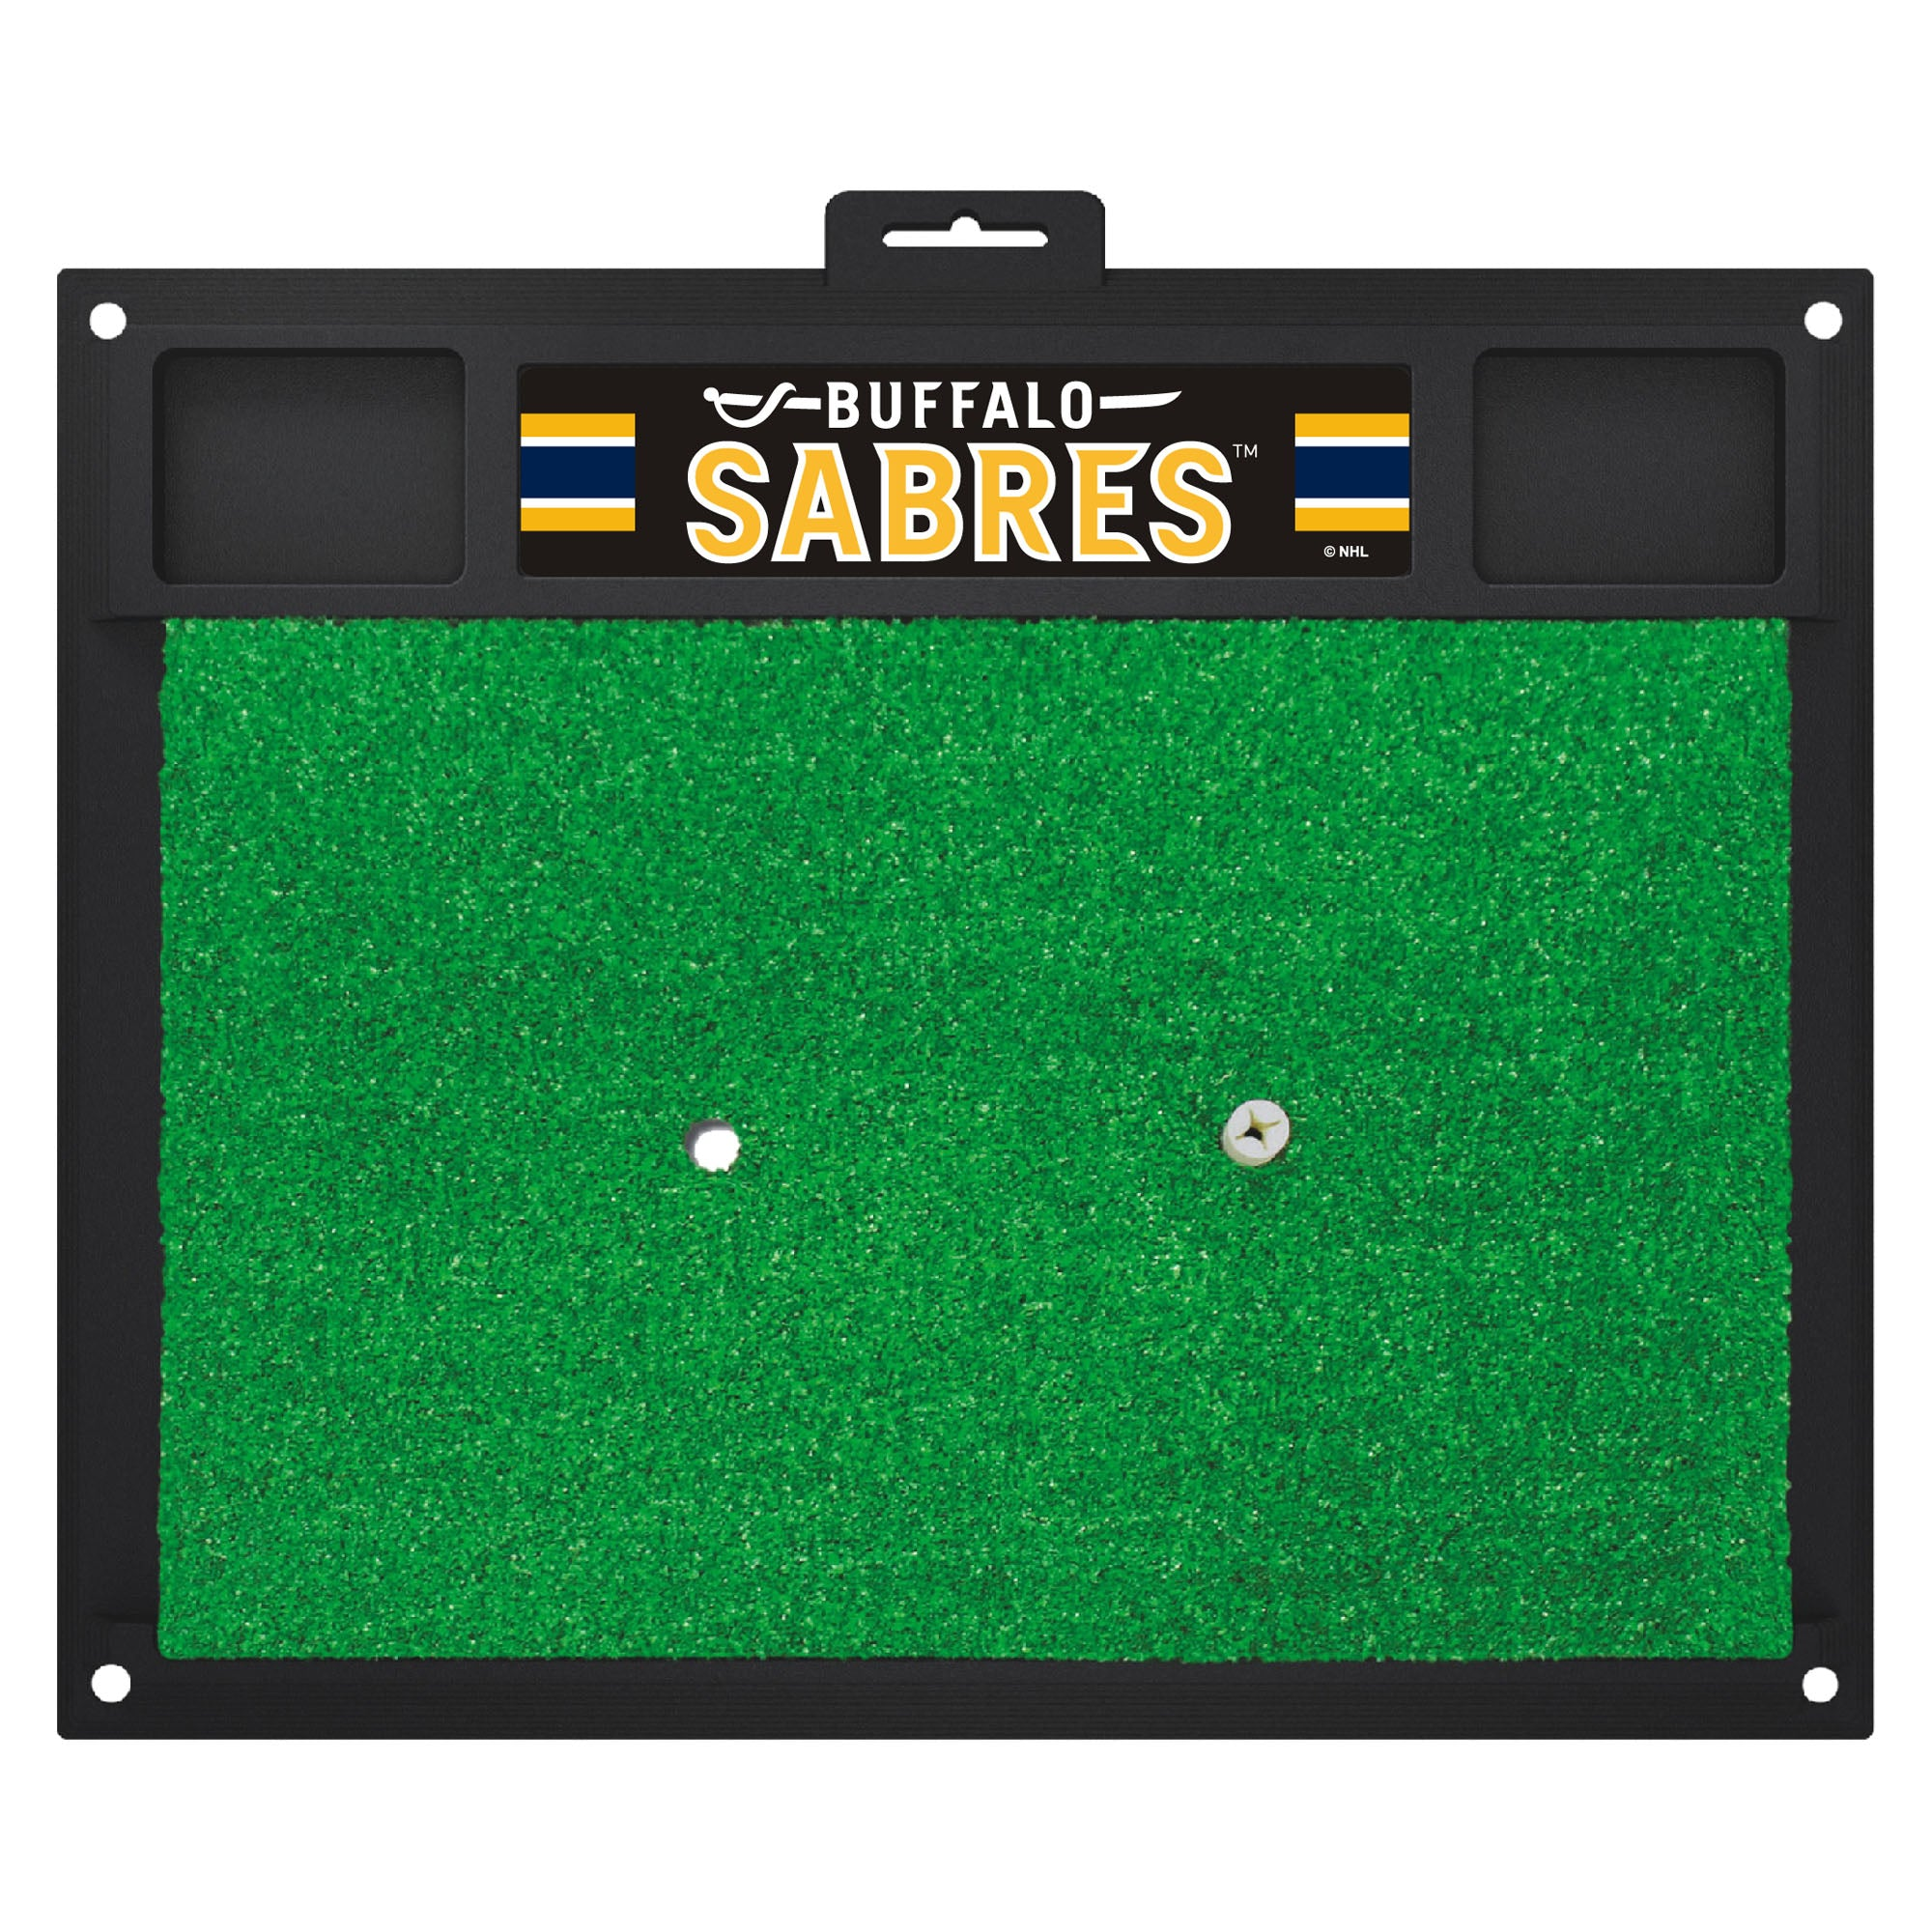 "NHL - Buffalo Sabres Golf Hitting Mat 20"" x 17"""